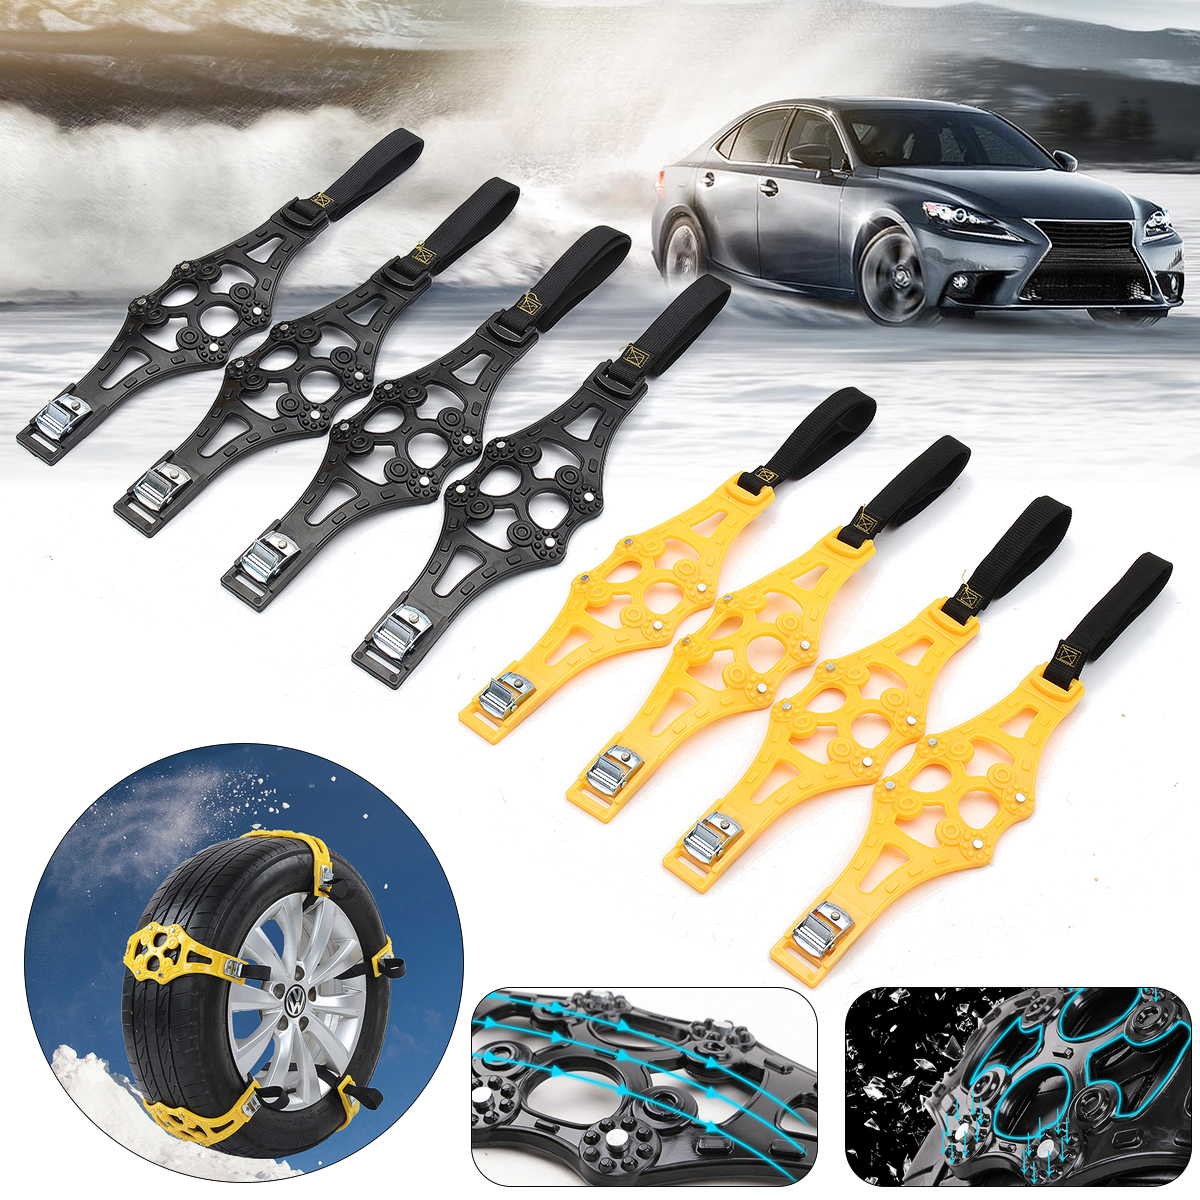 Car-Tyre Chains Wheel Roadway Safety-Tire Anti-Skid Snow Winter 4pcs/Set TPU Double-Snap-Skid title=